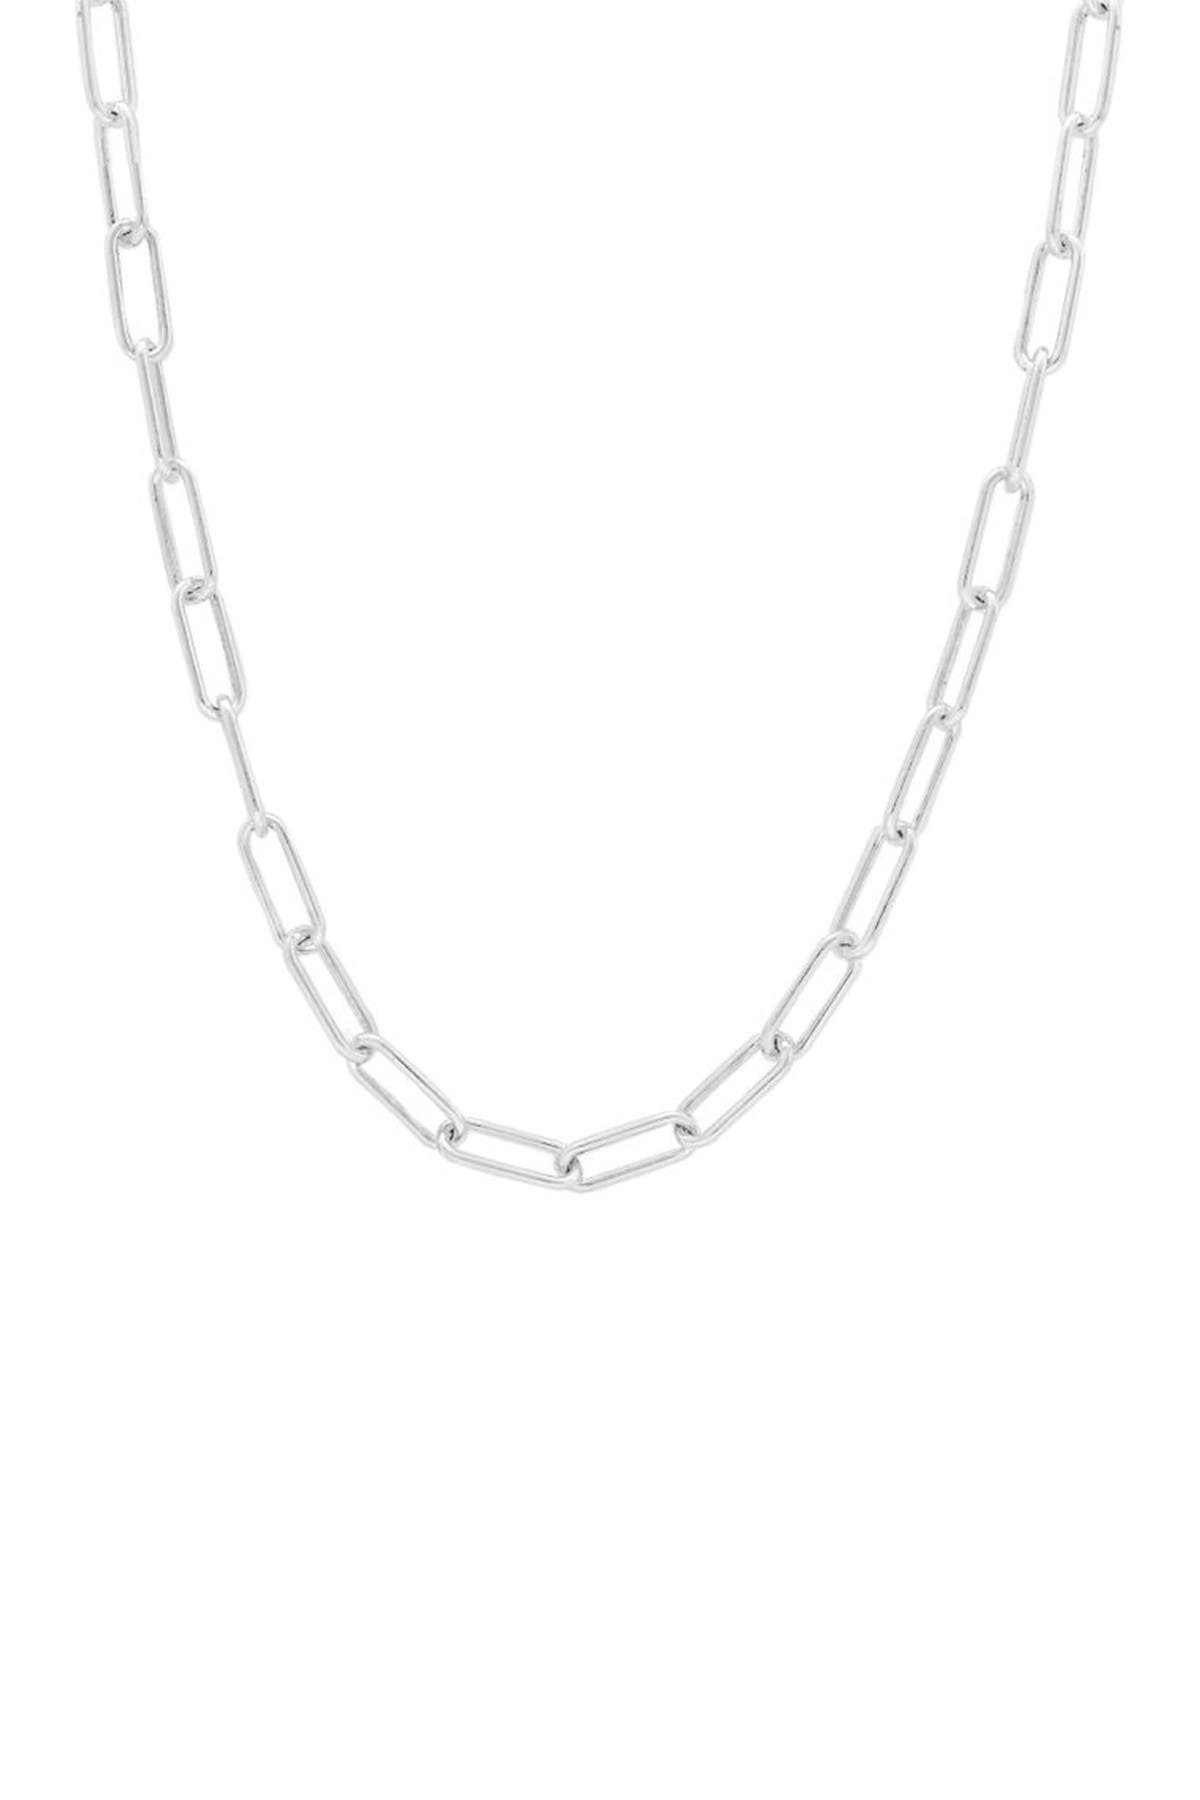 Image of Savvy Cie Sterling Silver Paperclip Necklace